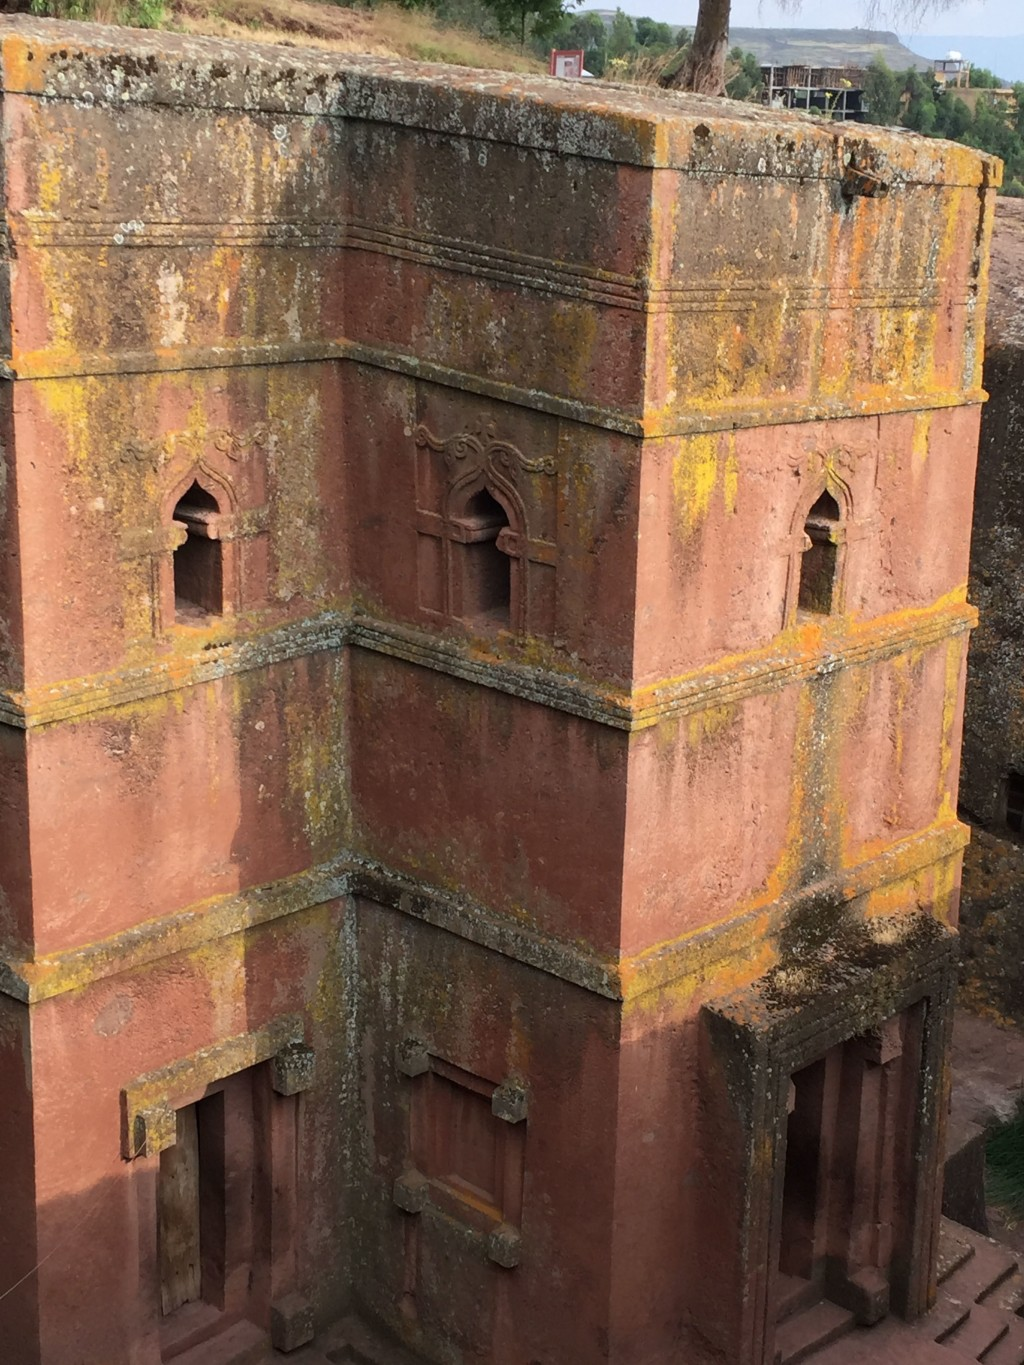 This Oct. 16, 2017 photo shows one of the 12th century churches carved from stone in Lalibela, Ethiopia. The architectural marvels are one of the coun...